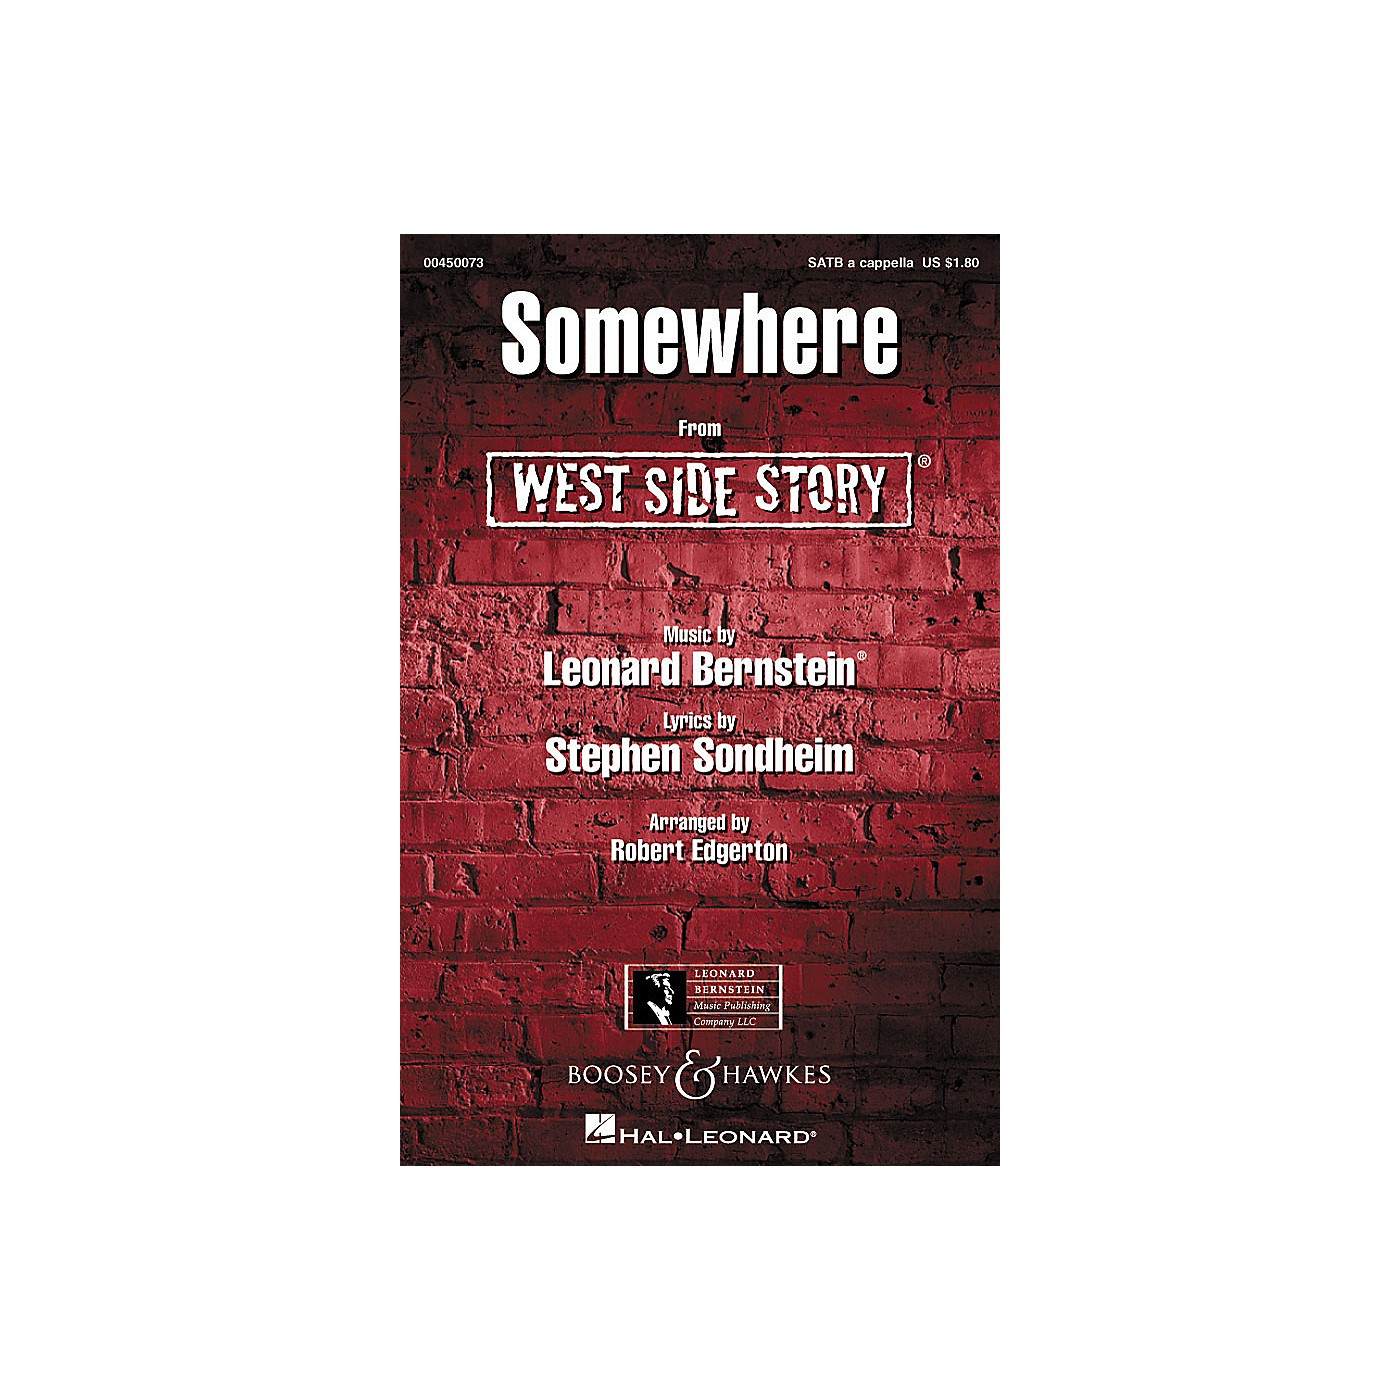 Hal Leonard Somewhere (from West Side Story) SATB a cappella Arranged by Robert Edgerton thumbnail